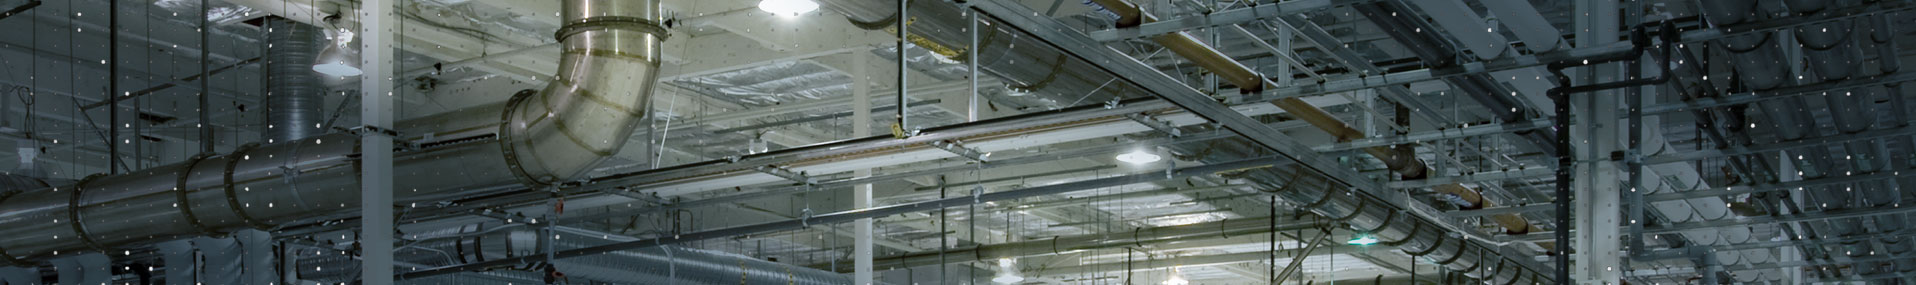 Industrial warehouse ceiling banner